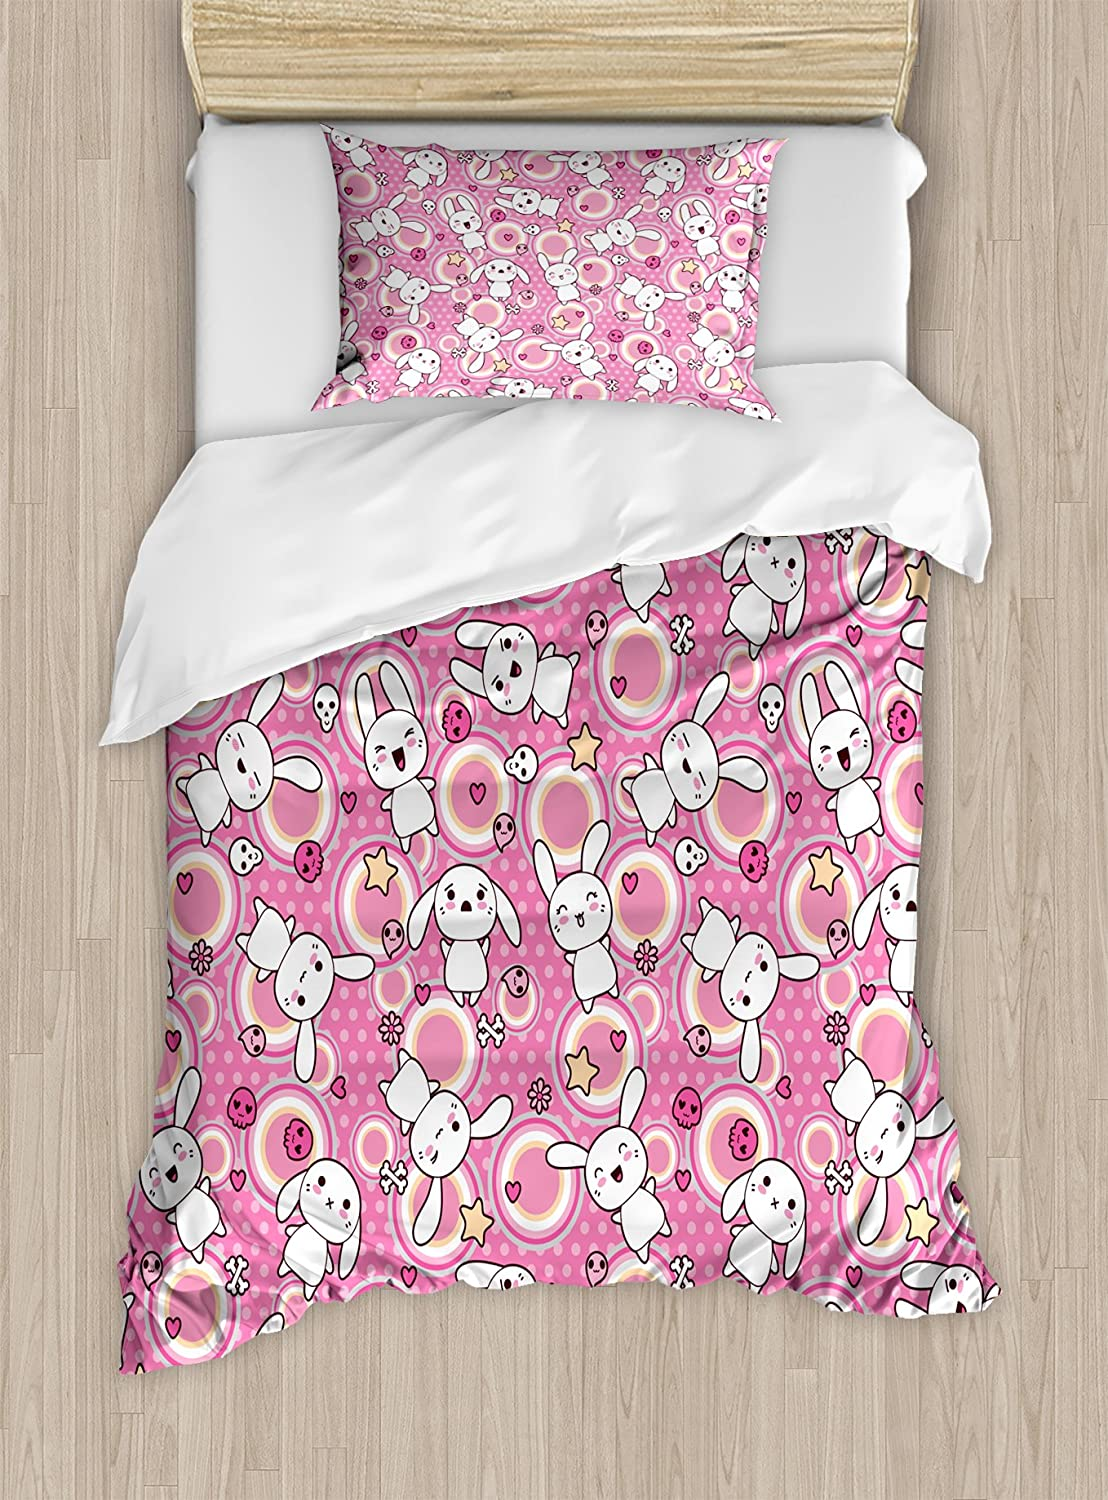 Ambesonne Anime Duvet Cover Set, Funny Kawaii Illustration with Rabbits Funky Animals Bunnies Kids Humor Print, Decorative 2 Piece Bedding Set with 1 Pillow Sham, Twin Size, White Pink